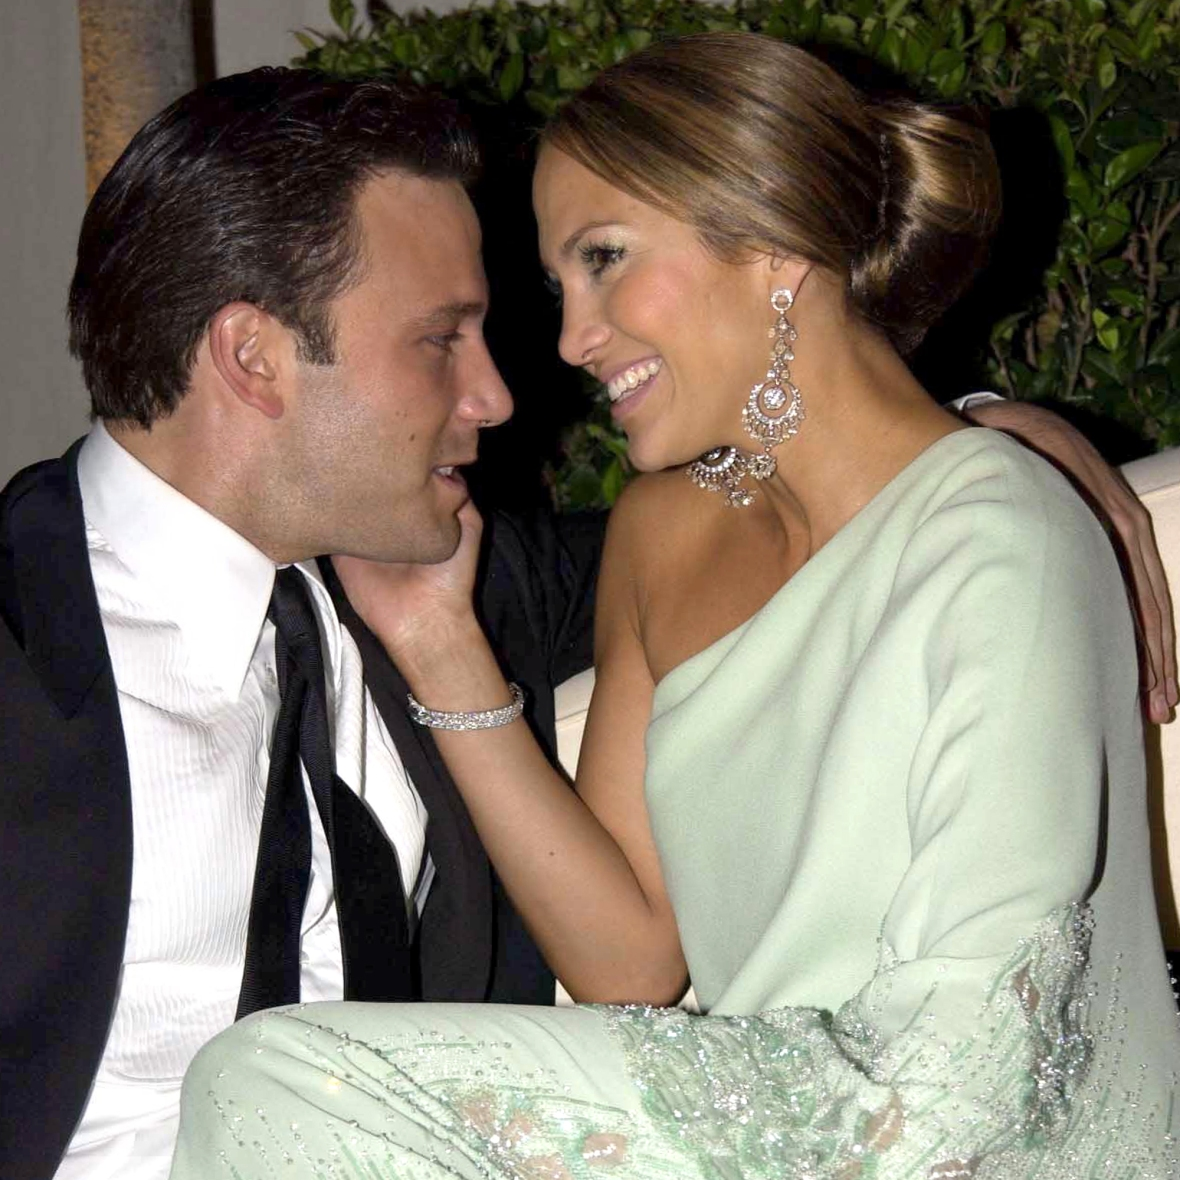 Jennifer Lopez and Ben Affleck 'Looked Totally Loved Up' During Her 52nd Birthday Dinner